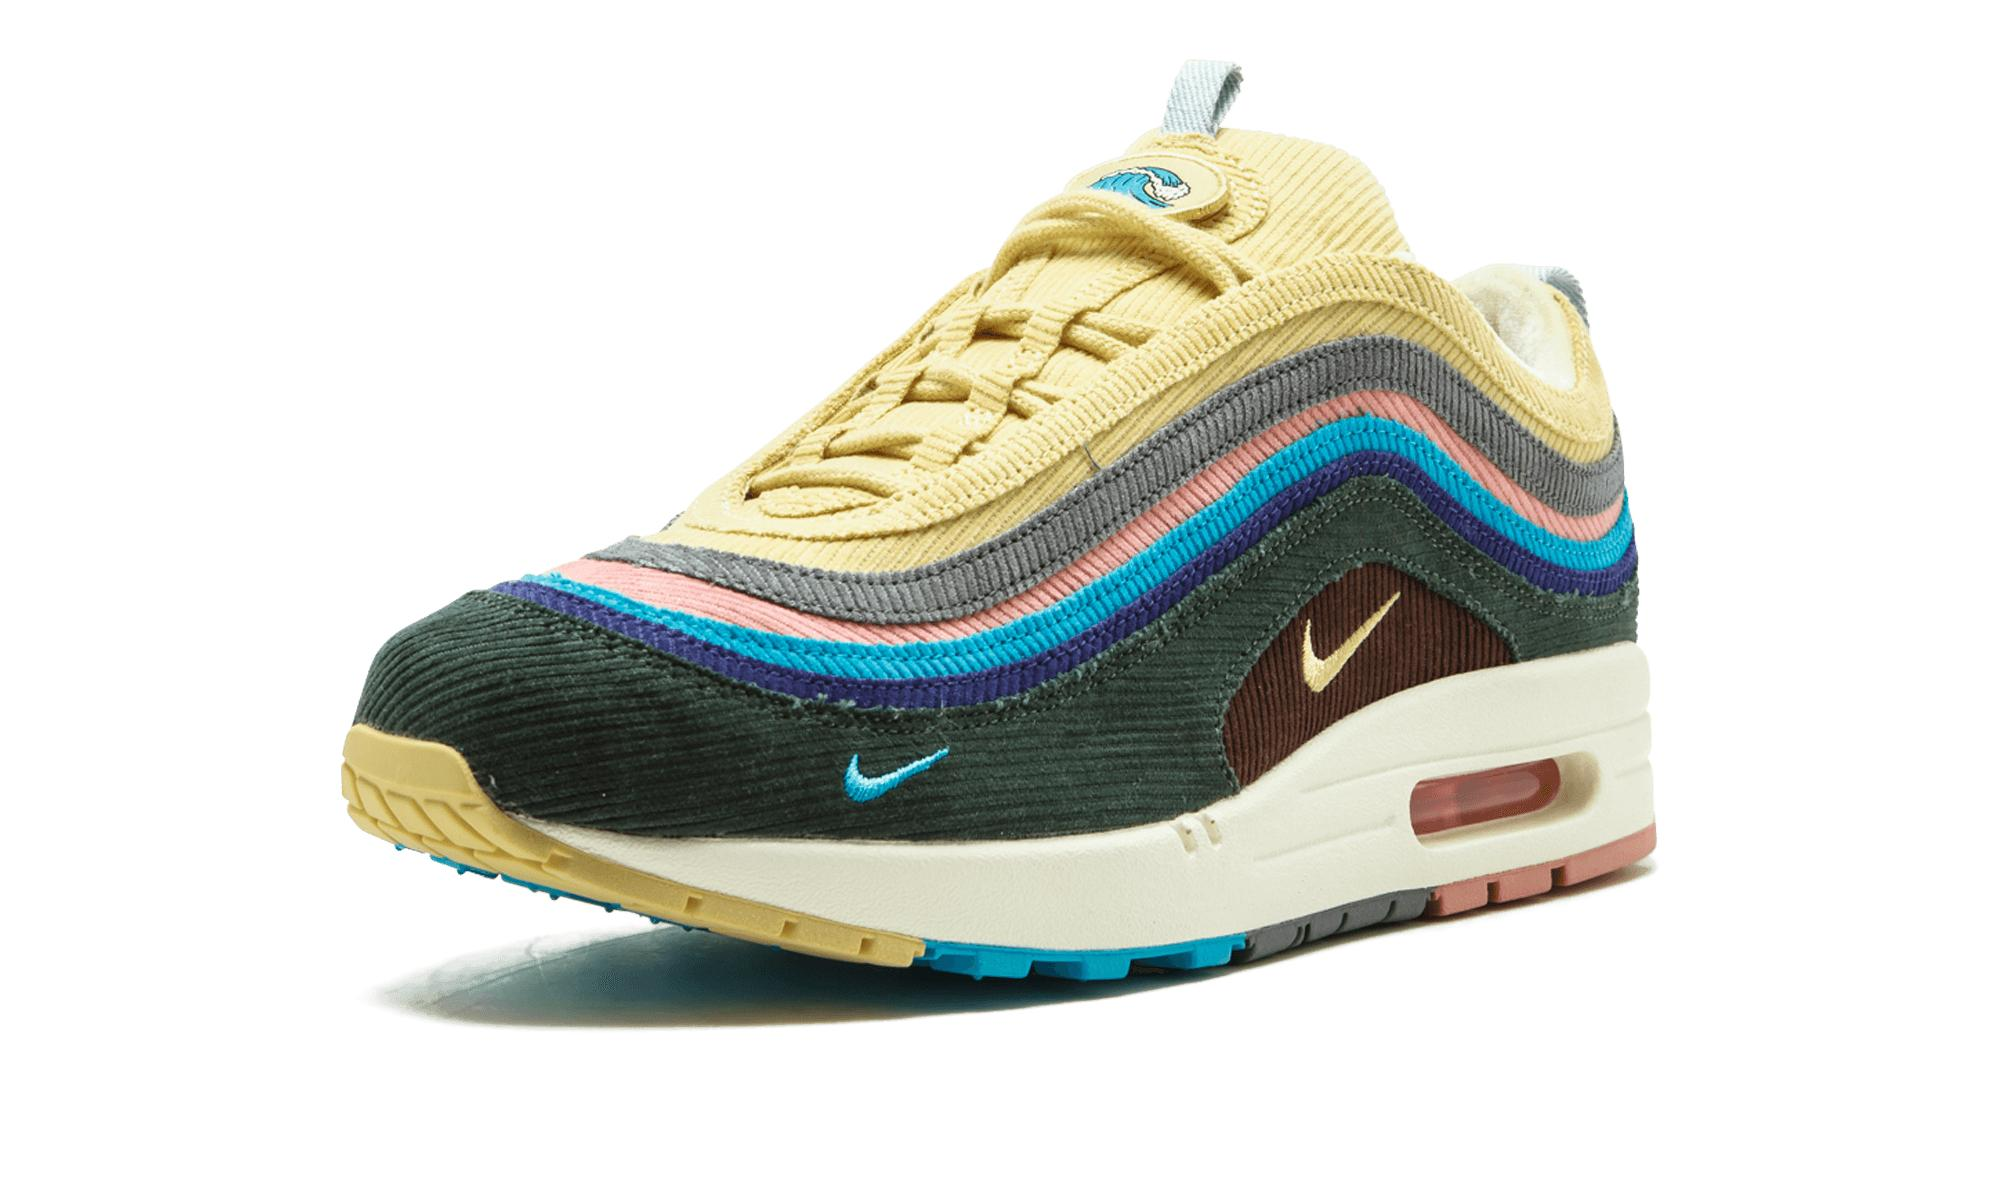 Nike Air Max 197 Sean Wotherspoon Men Size 9.5 Brand New